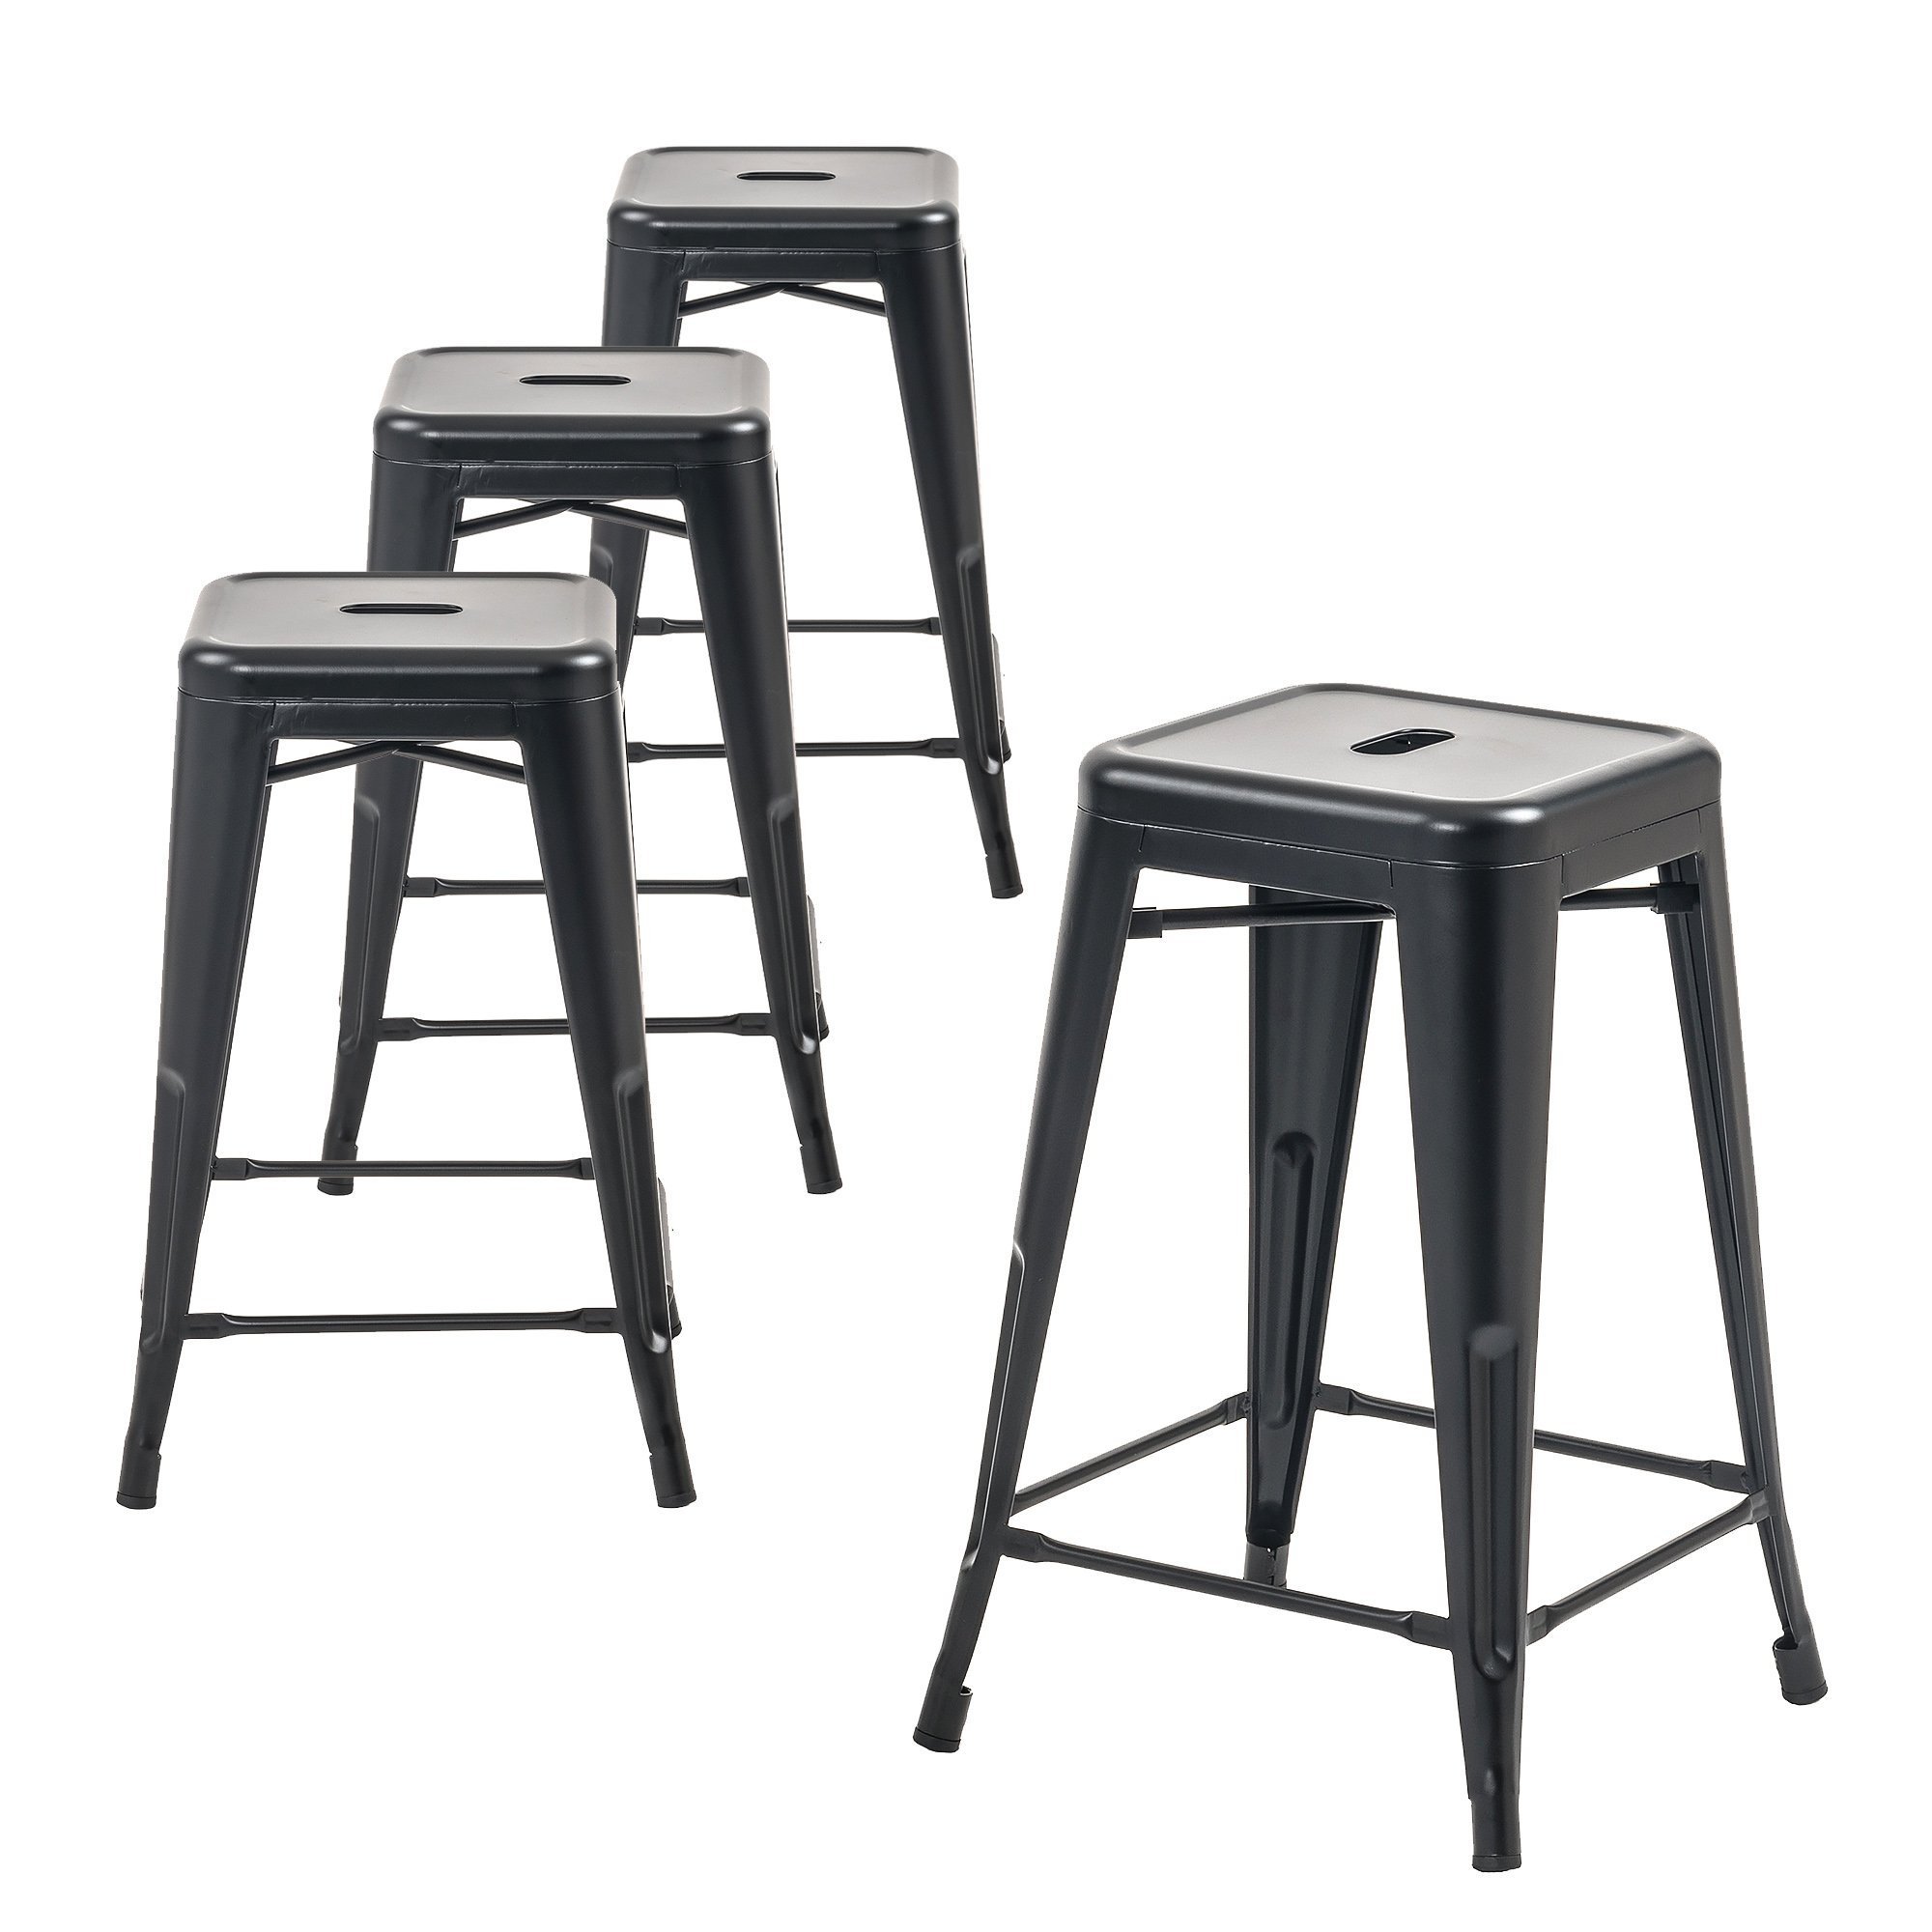 Buschman Metal Bar Stools 24'' Counter Height, Indoor/Outdoor and Stackable, Set of 4 (Matte Black) by Buschman Store